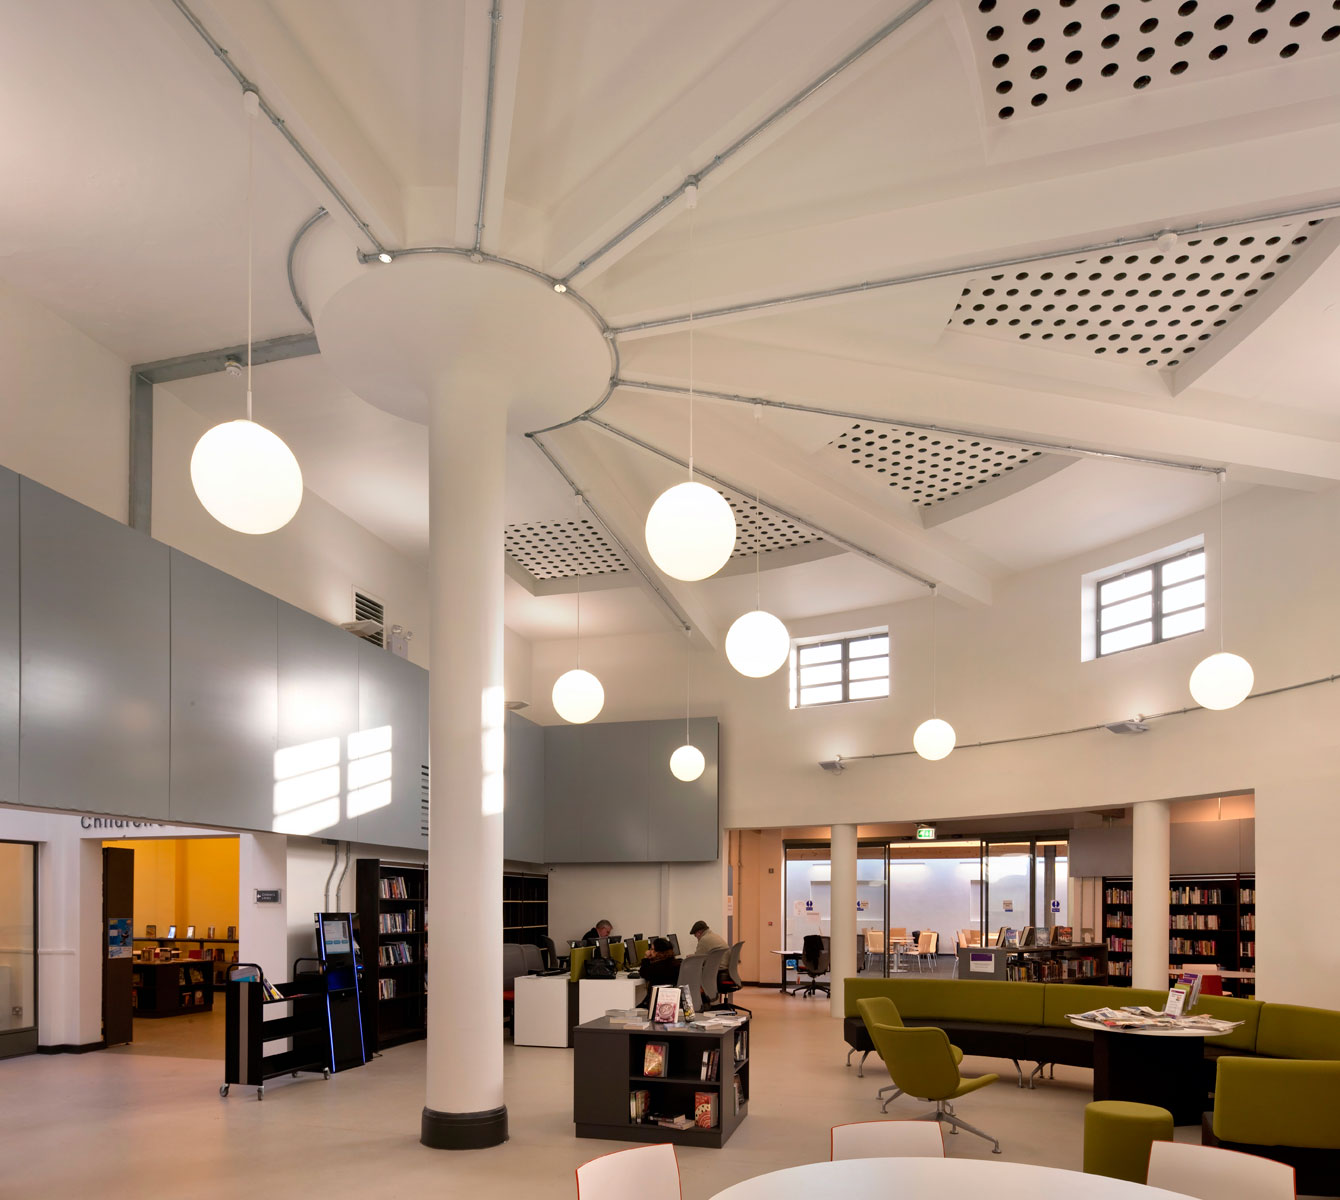 Hounslow 05_Isleworth library Interior.jpg